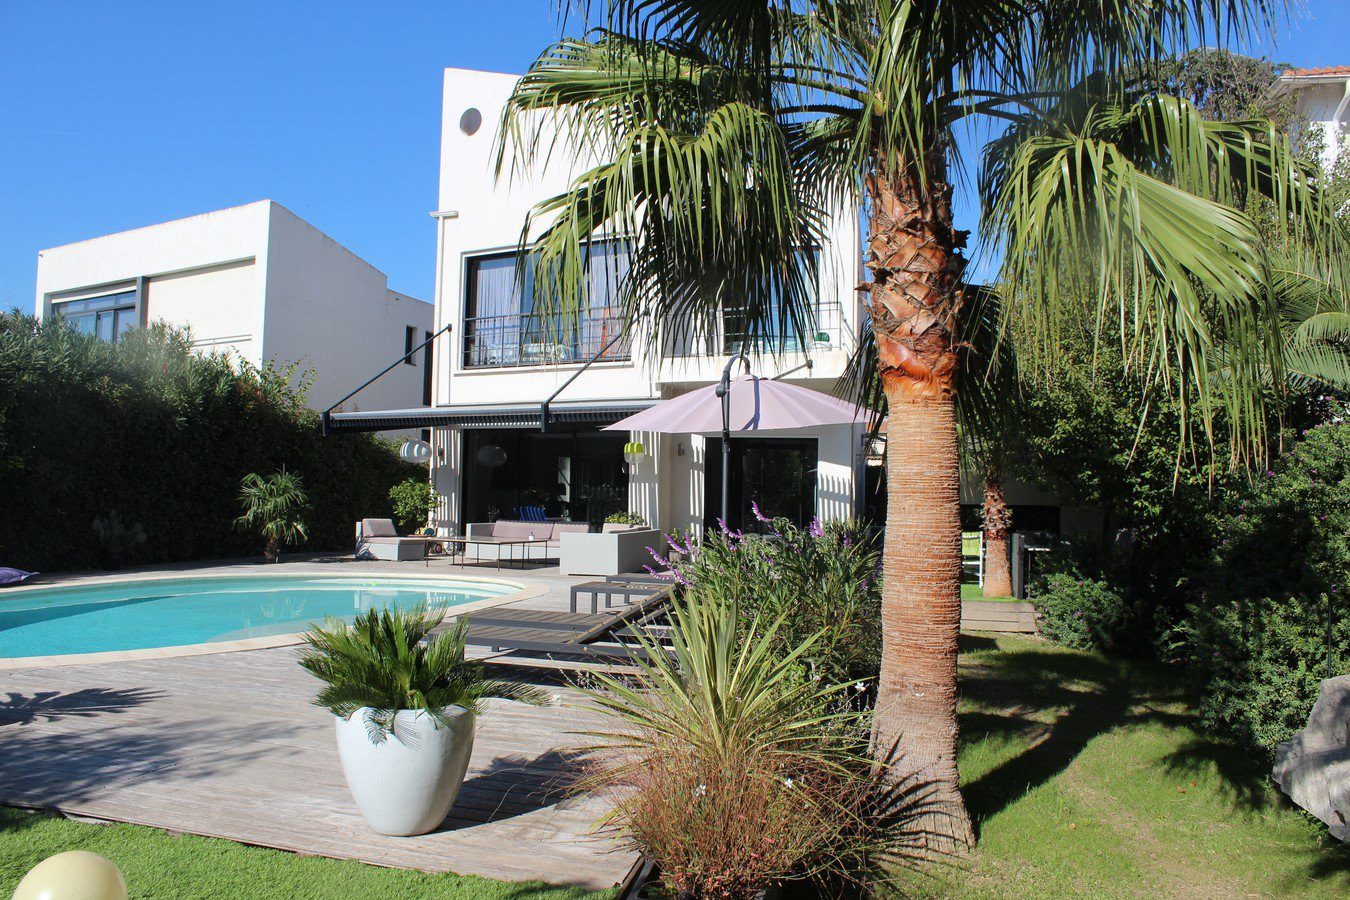 congress rental house 4 bedroom close center of Cannes swimming pool